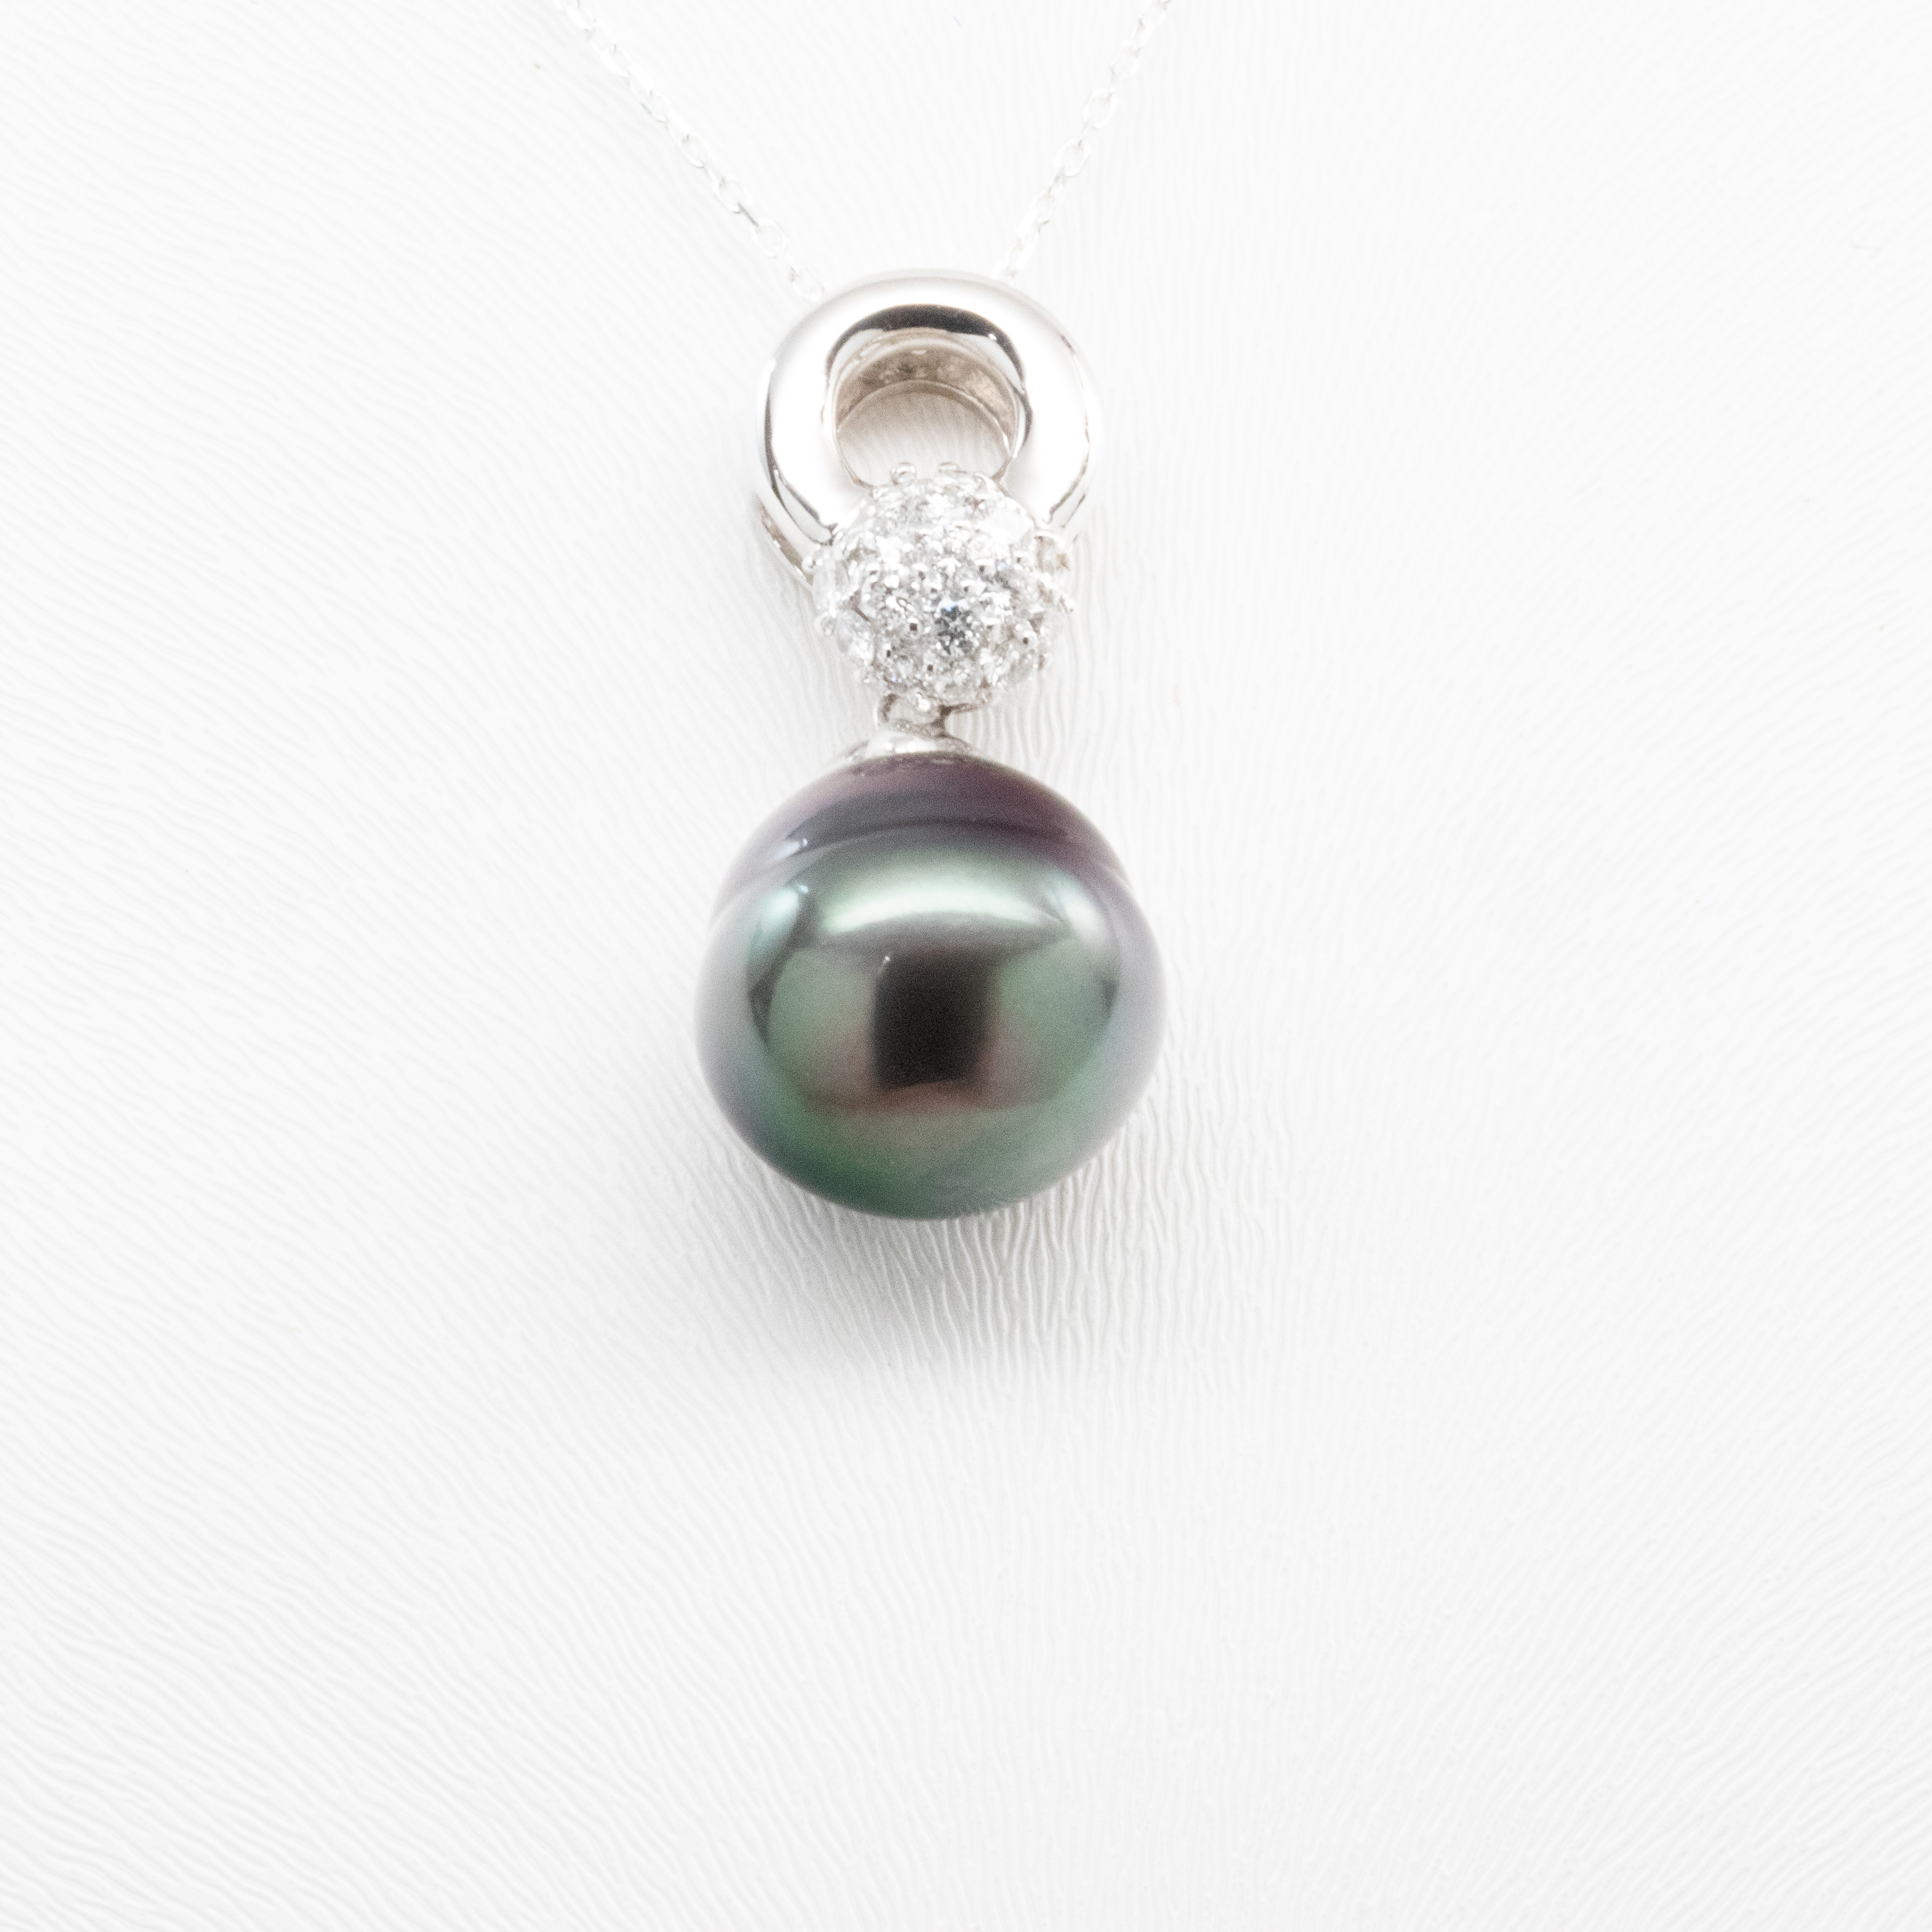 Tahitian Black Pearl Pendant with Diamond Accents